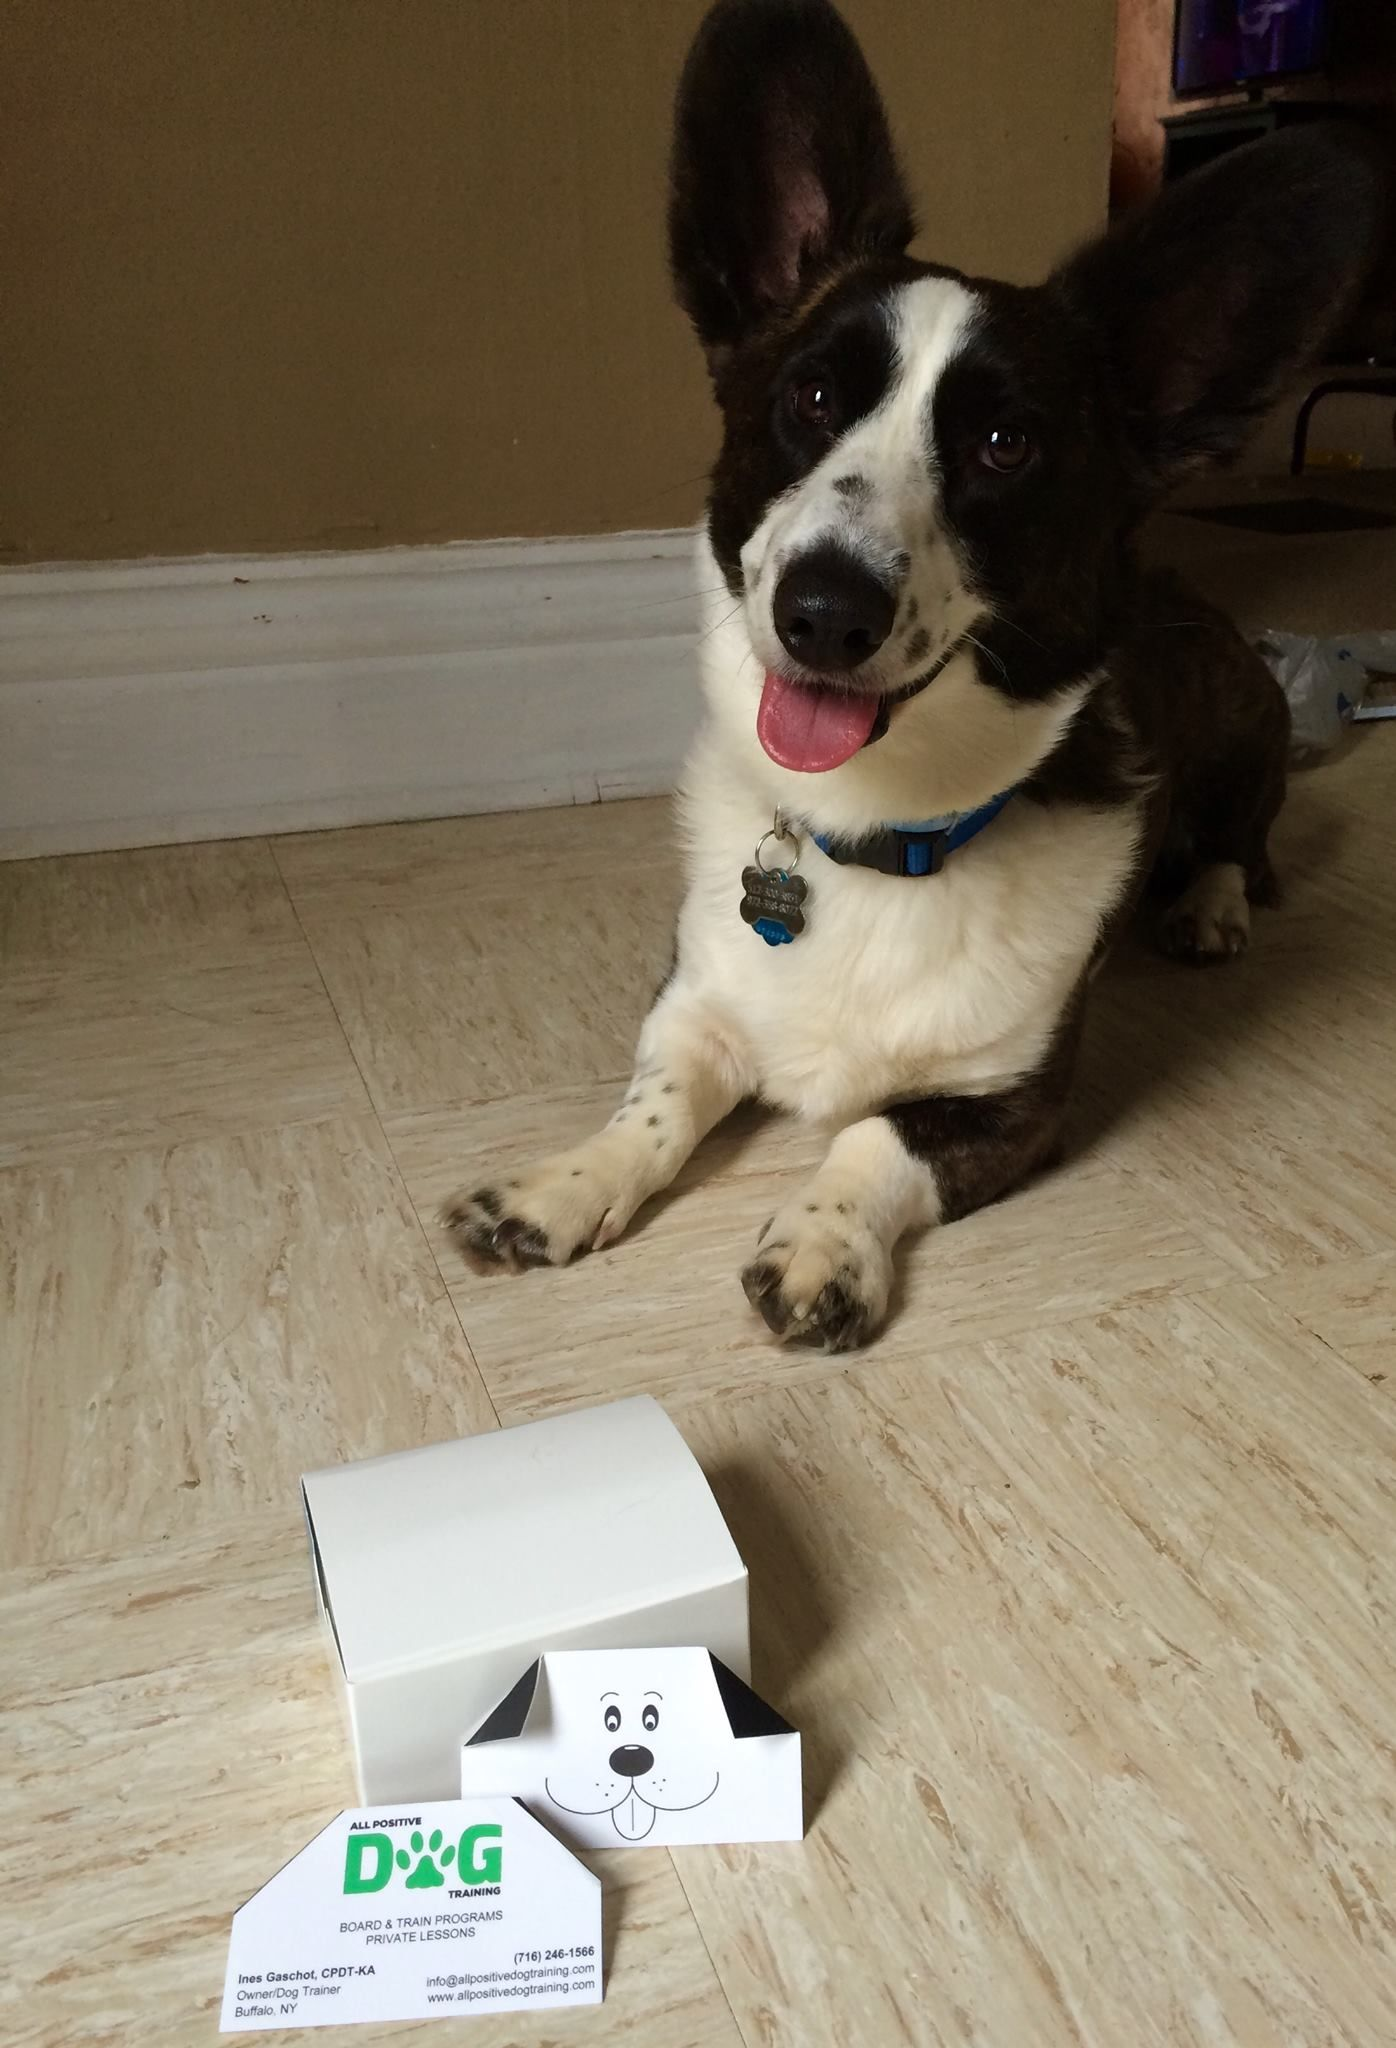 dog training business cards | K9 Solutions | Pinterest | Business ...